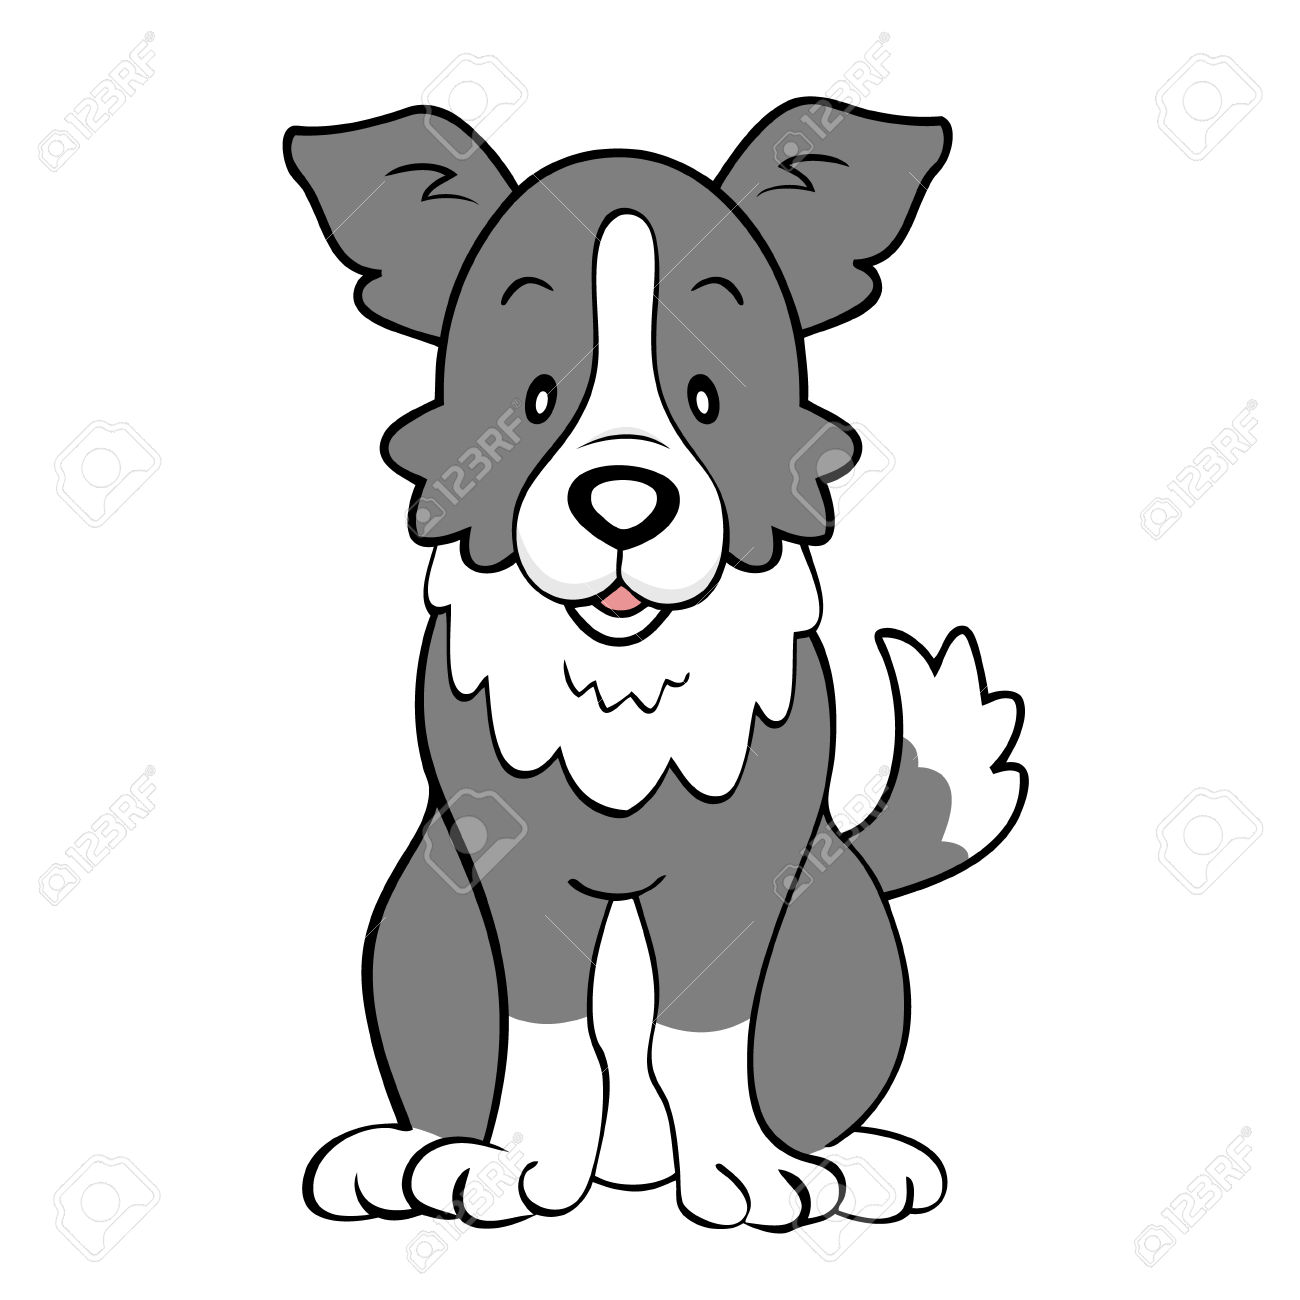 rough collie silhouette at getdrawings com free for personal use rh getdrawings com border collie dog clipart border collie clip art free